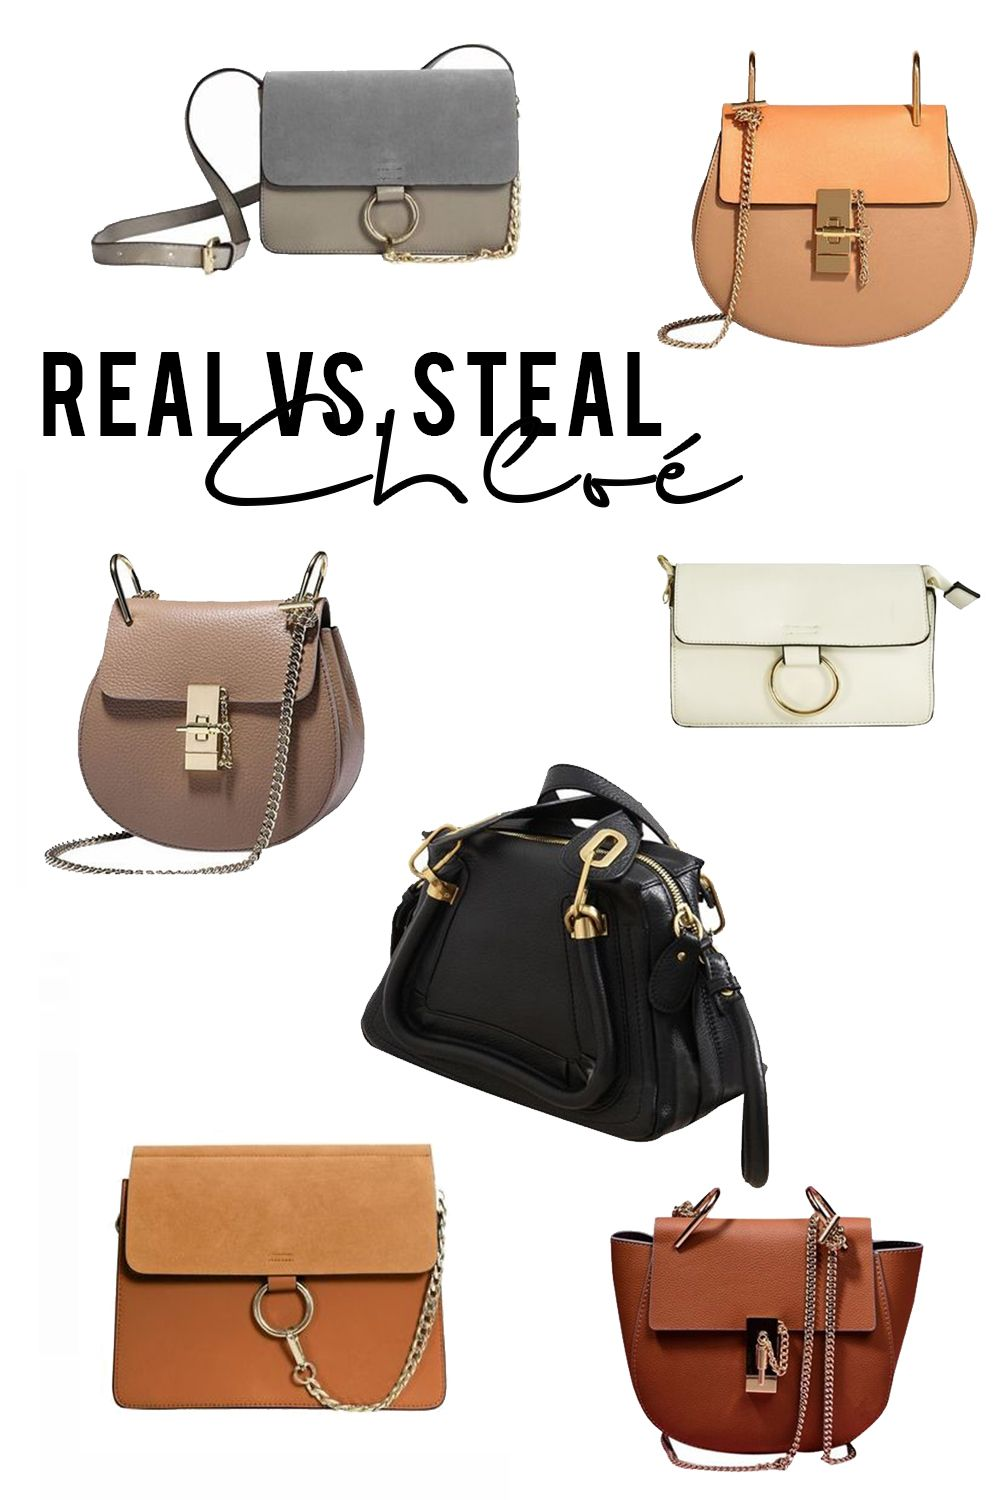 6a59065907 Real vs. Steal Chloé Dupes - Drew